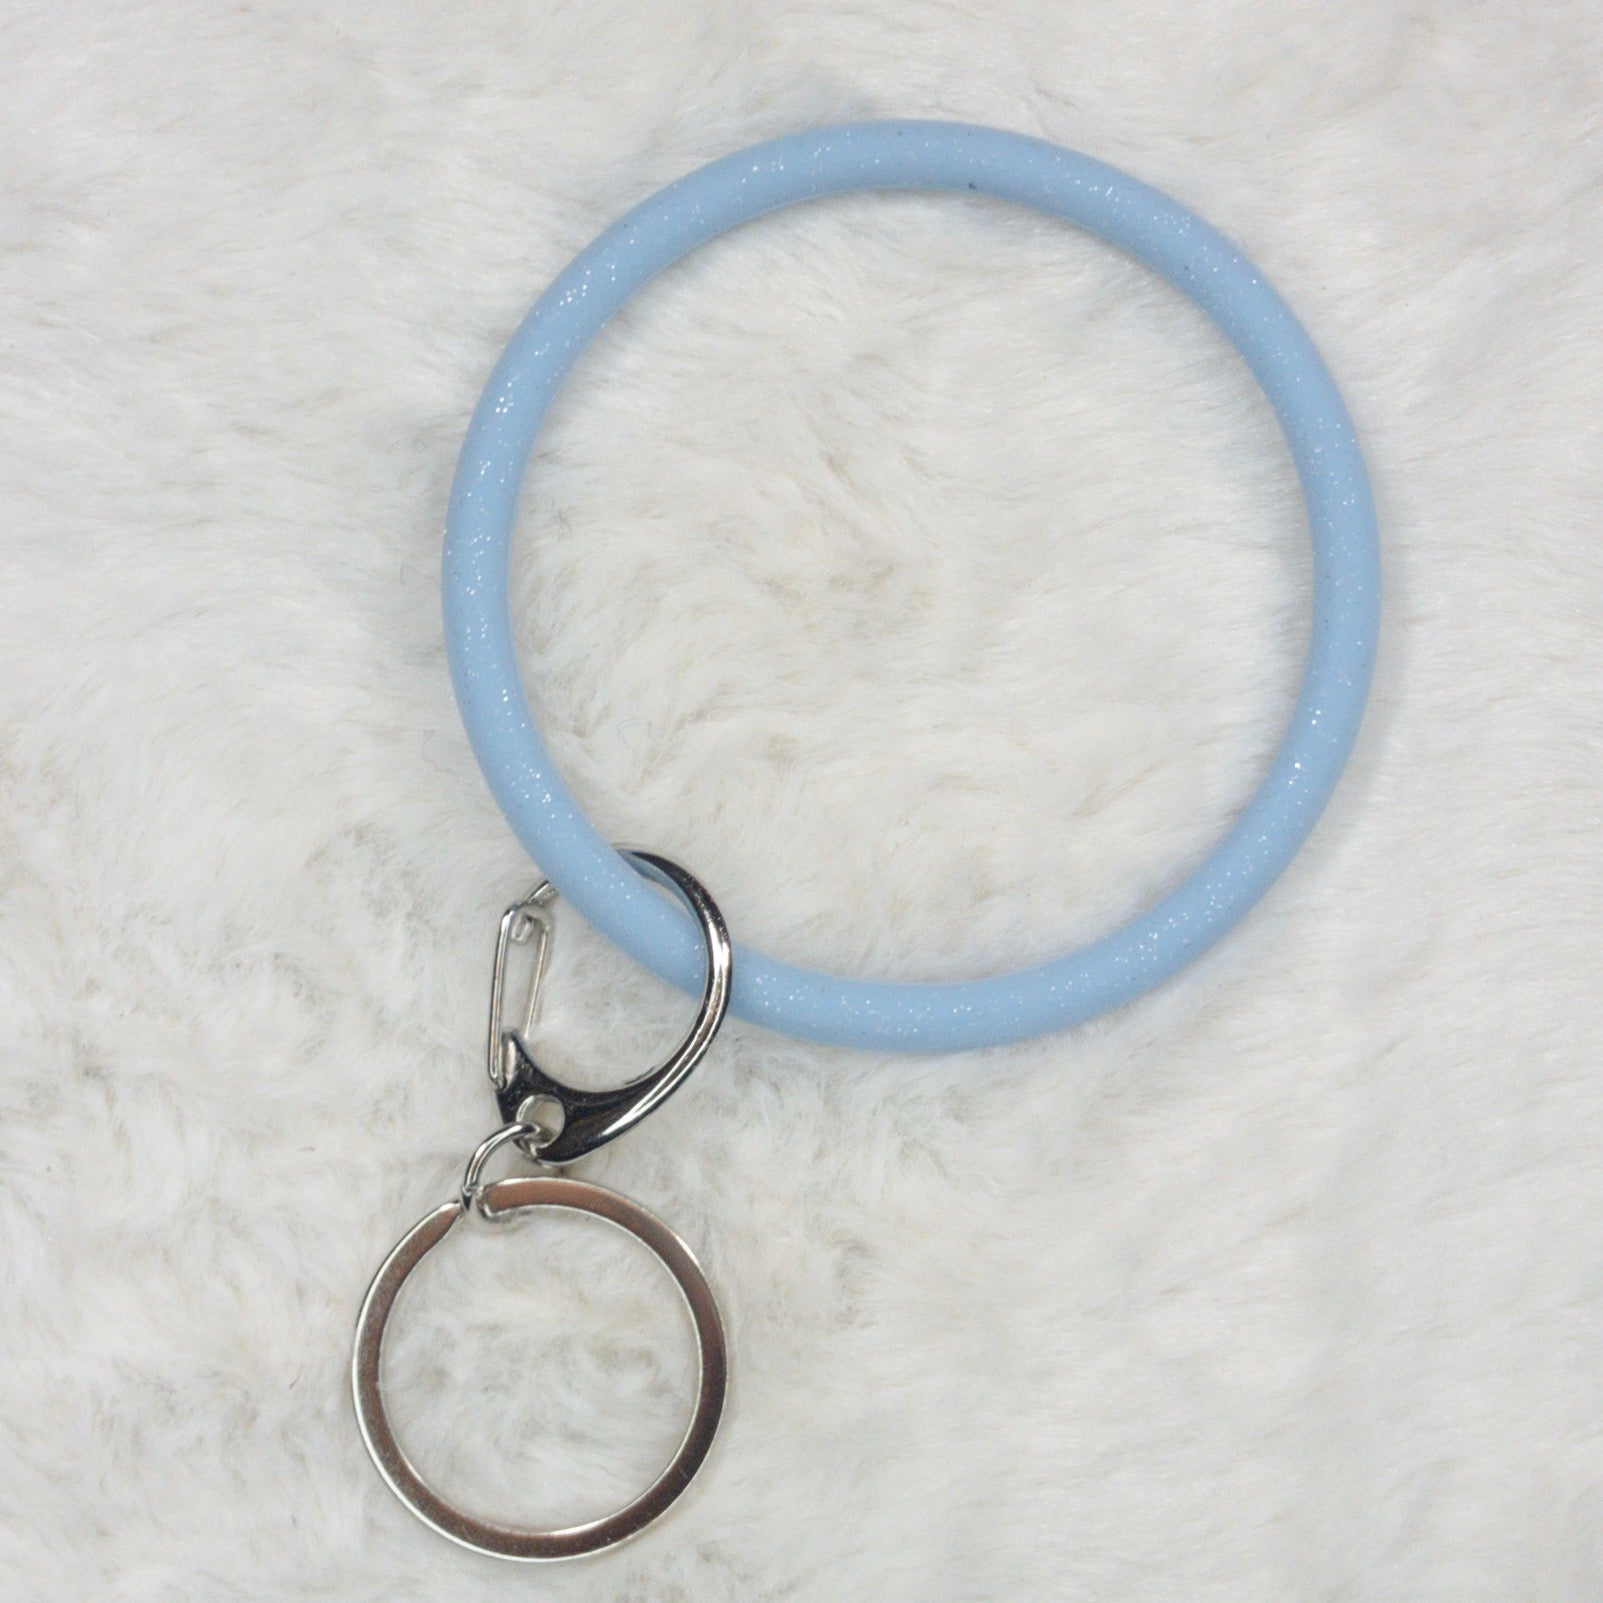 Slim Elastic Wrist Key Chain in Periwinkle Glitter - True Bliss Boutique